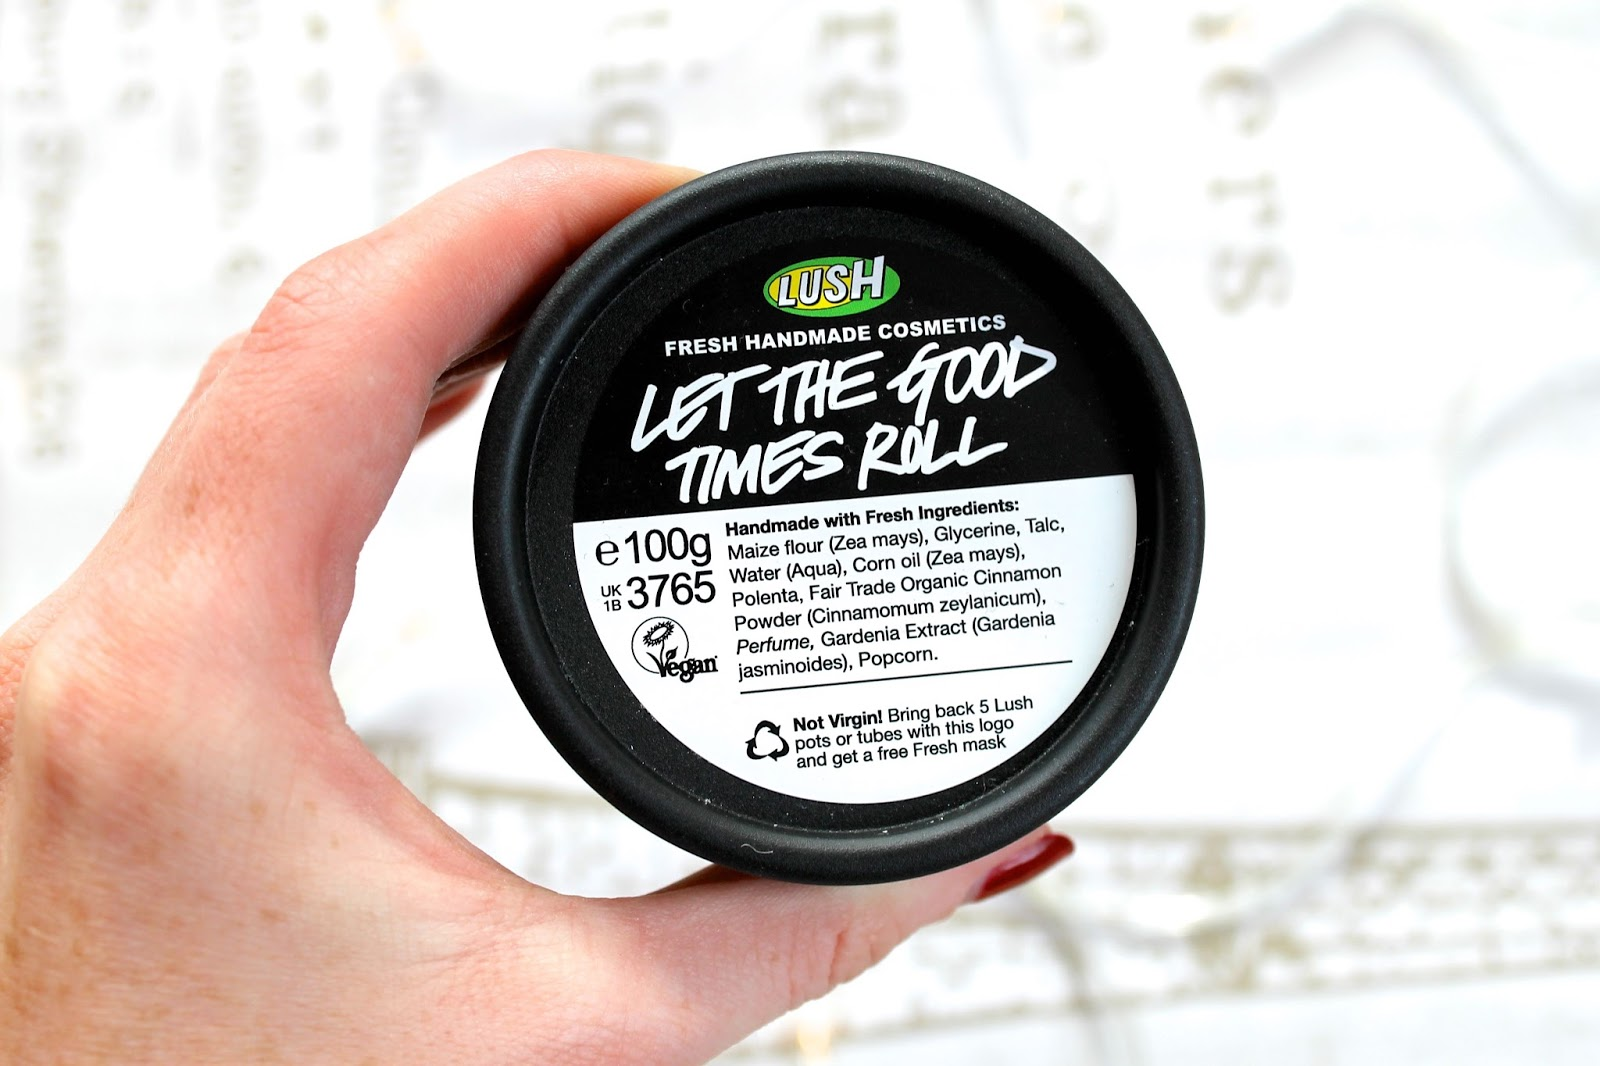 LUSH let the good times roll skincare review